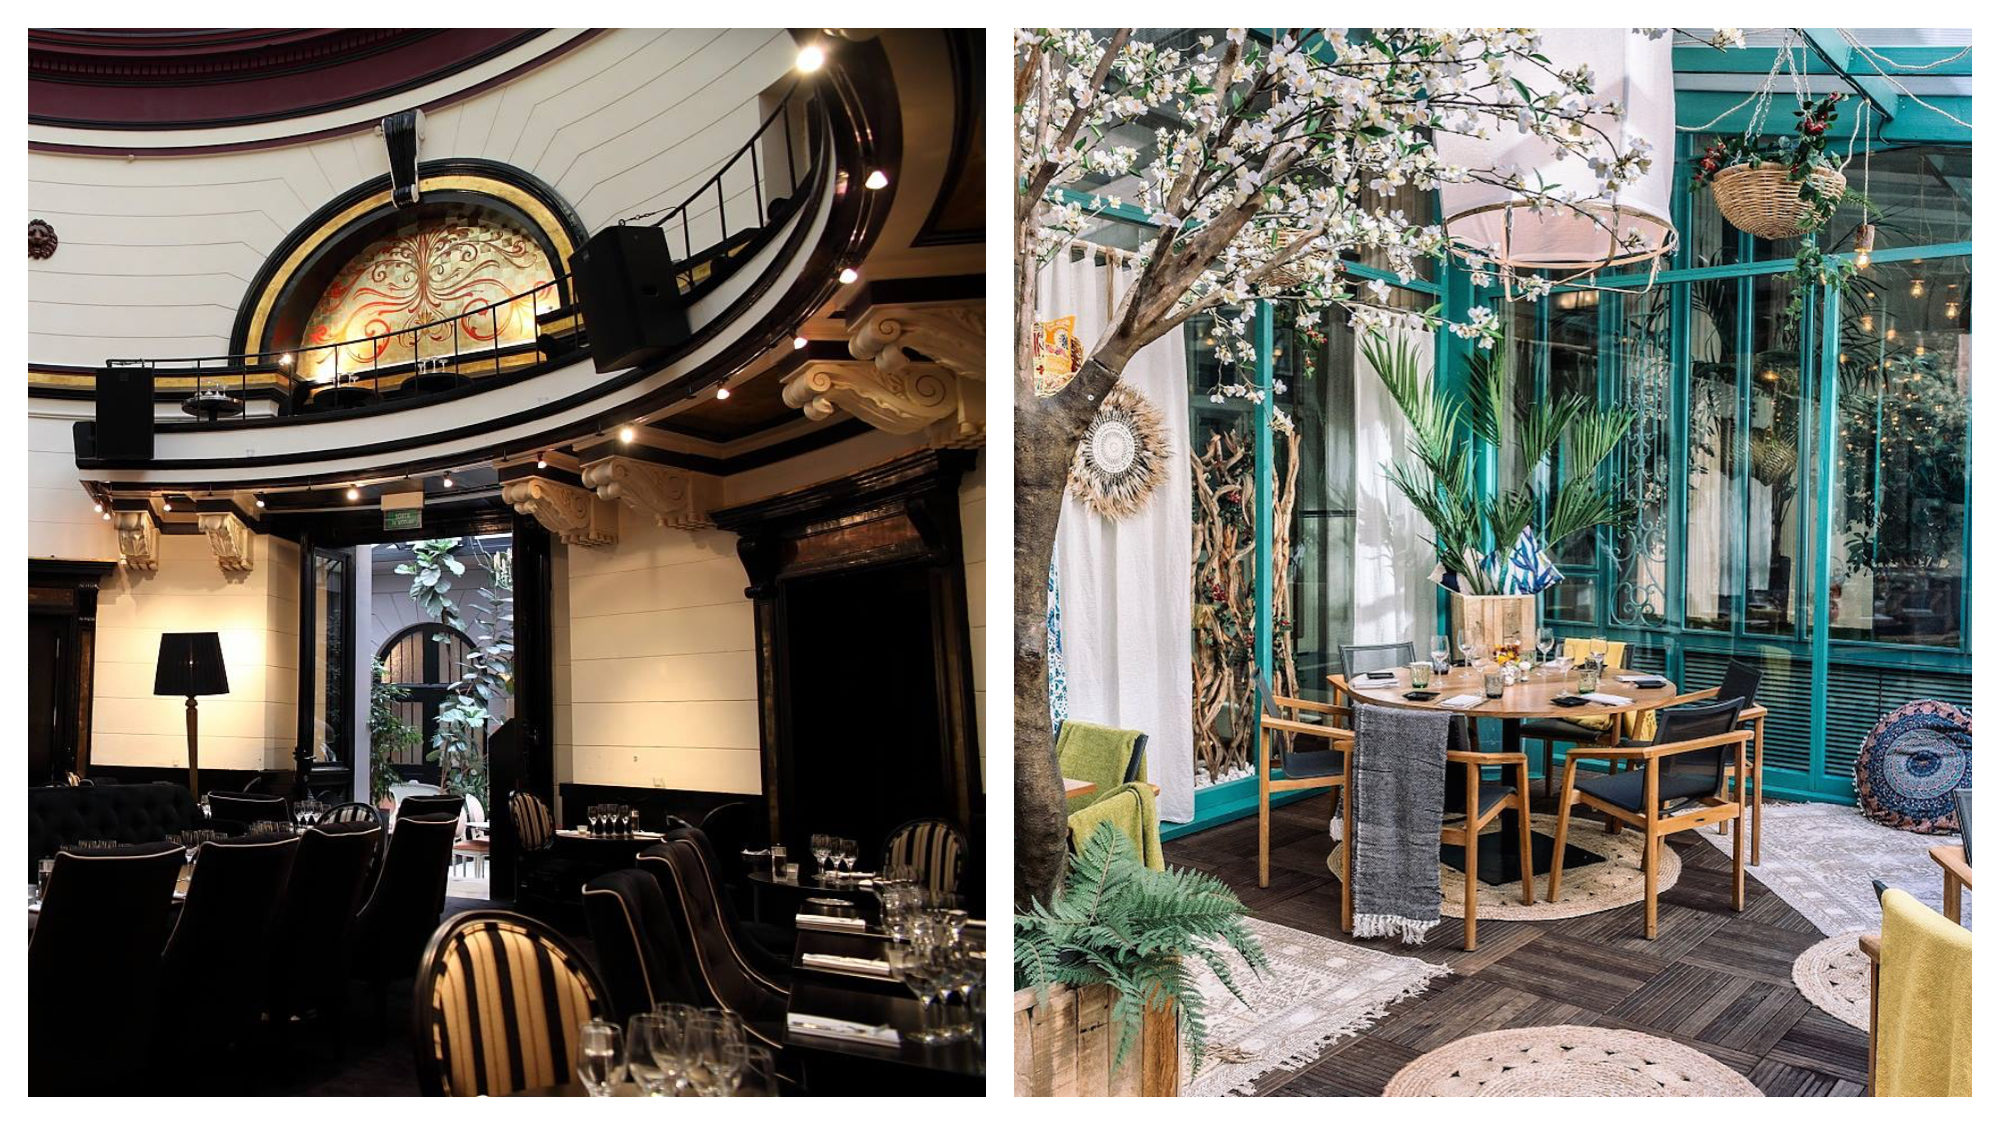 Inside the Dome du Marais restaurant (left) and the Westin Hotel Paris's winter garden with trees and lanterns (right).